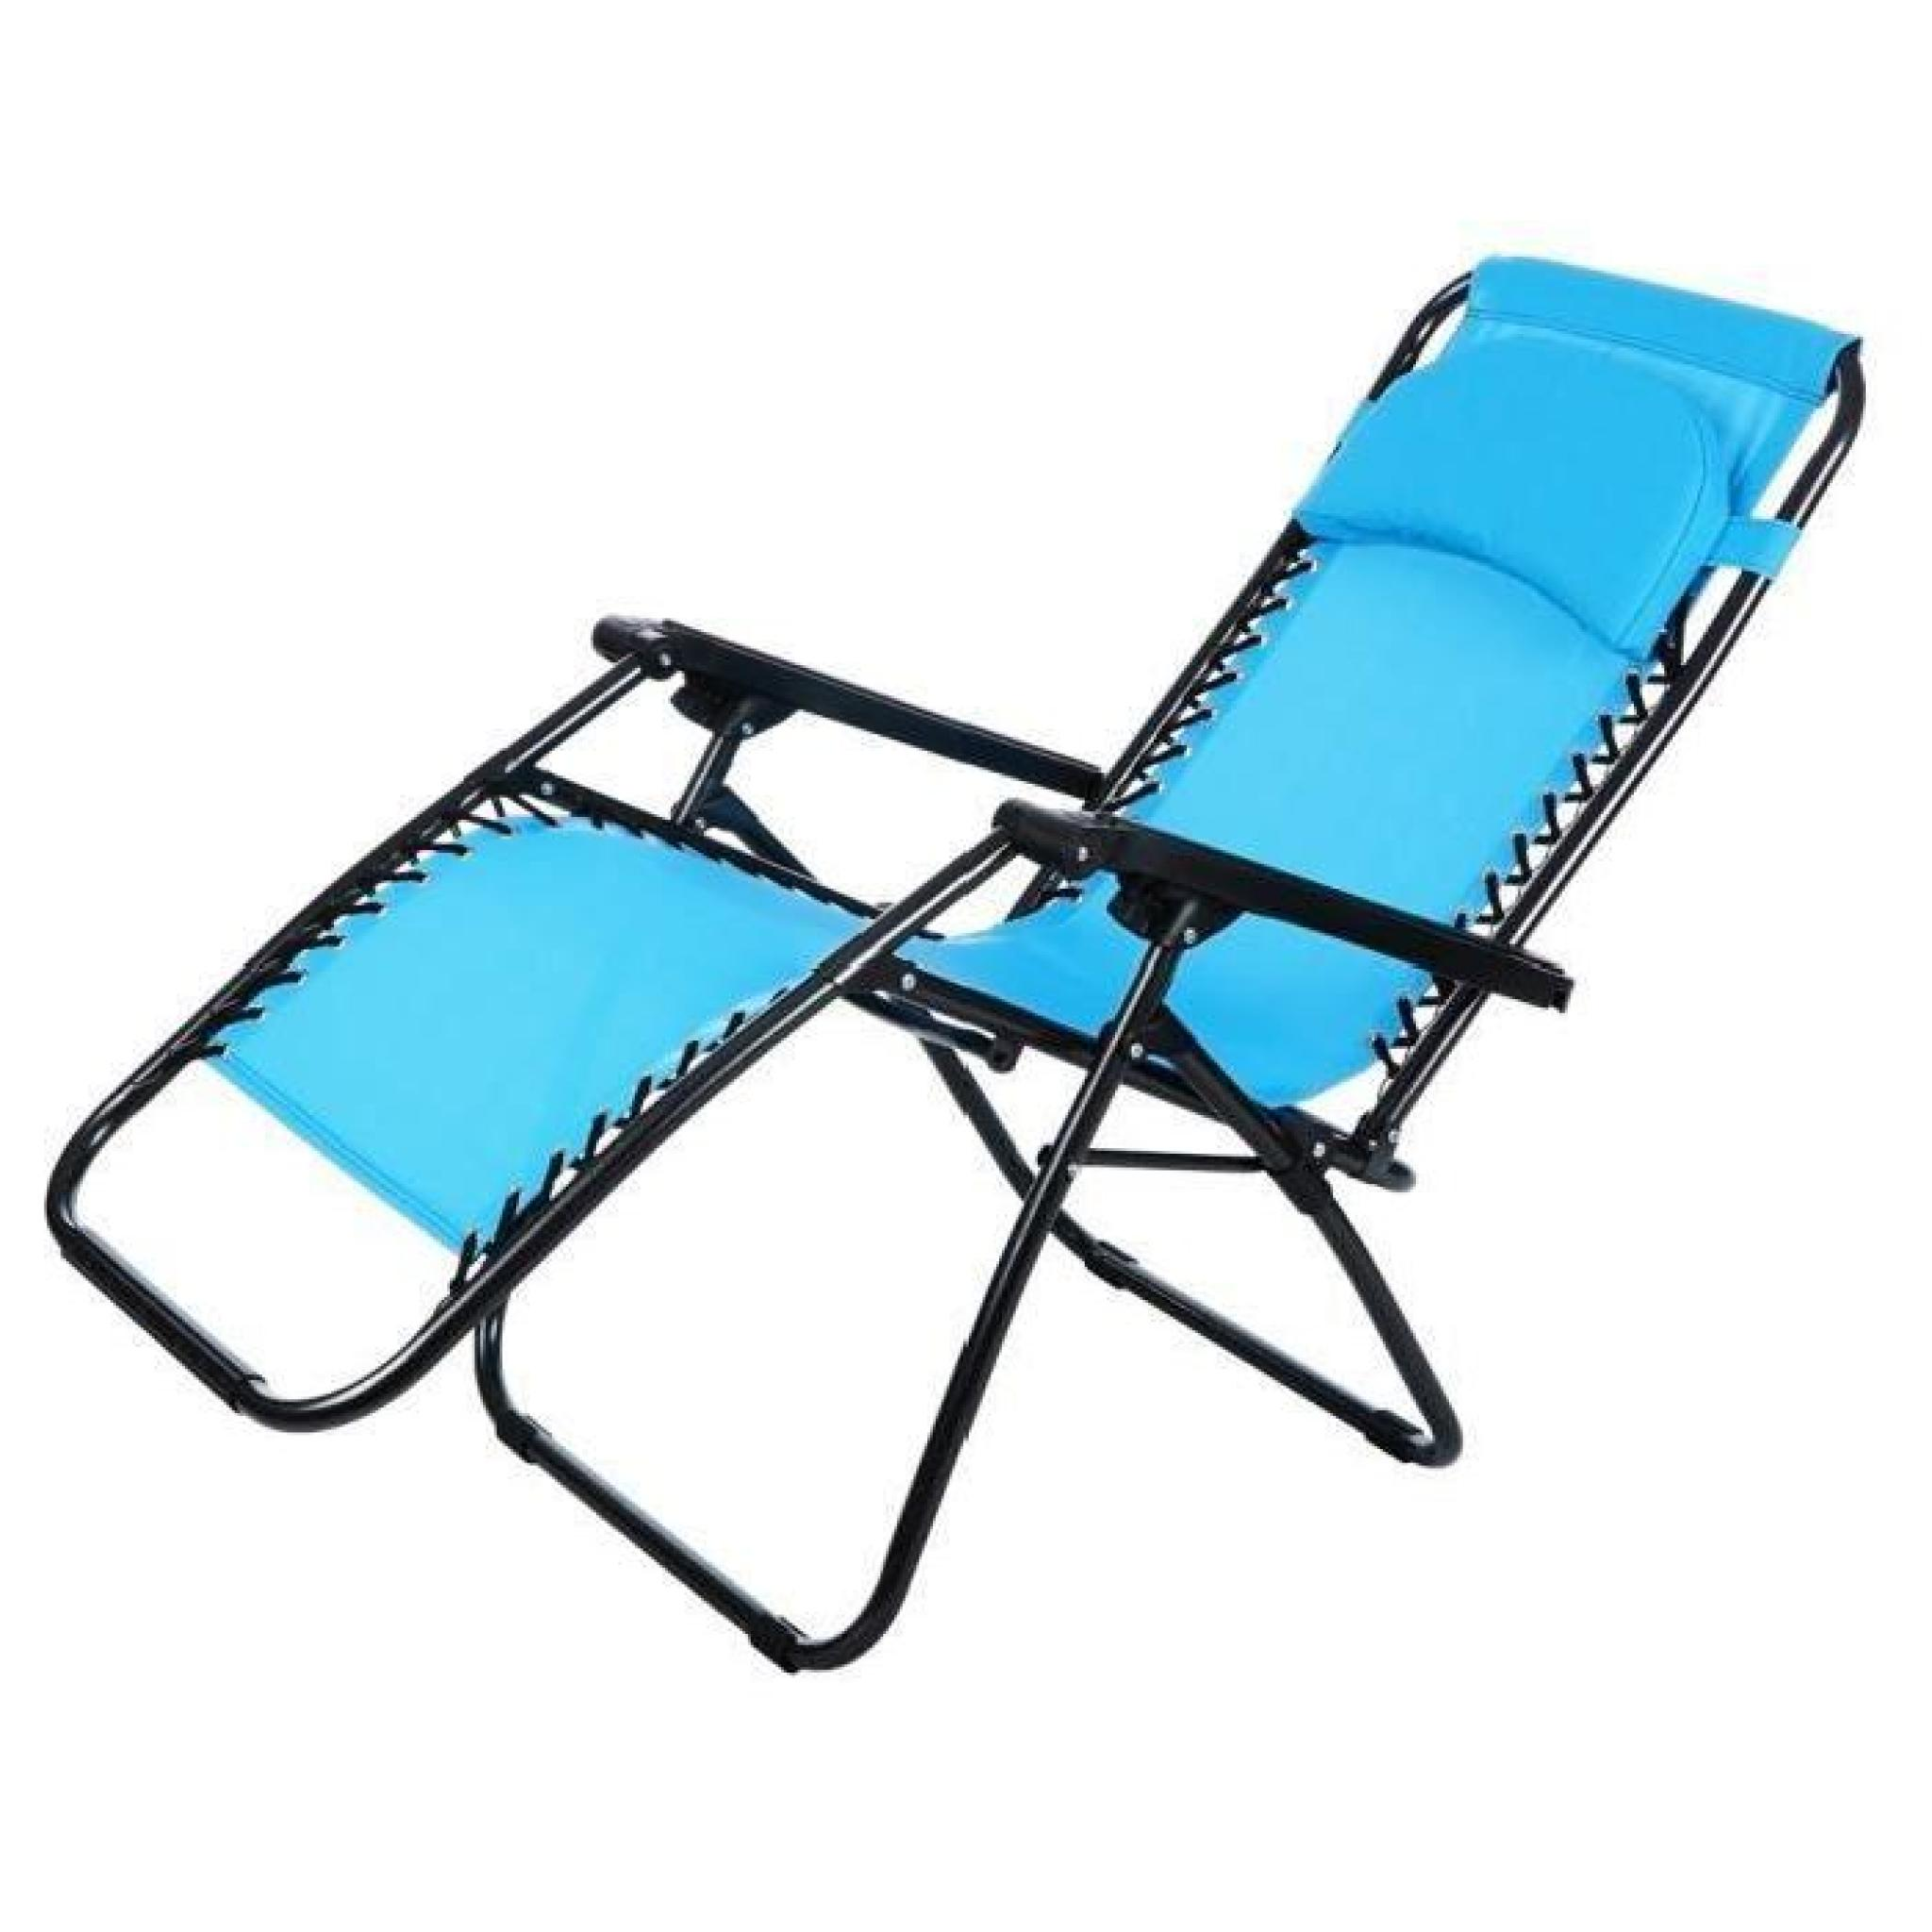 chaise pliant inclinable jardin plage camping chaise ext rieure achat vente transat de jardin. Black Bedroom Furniture Sets. Home Design Ideas